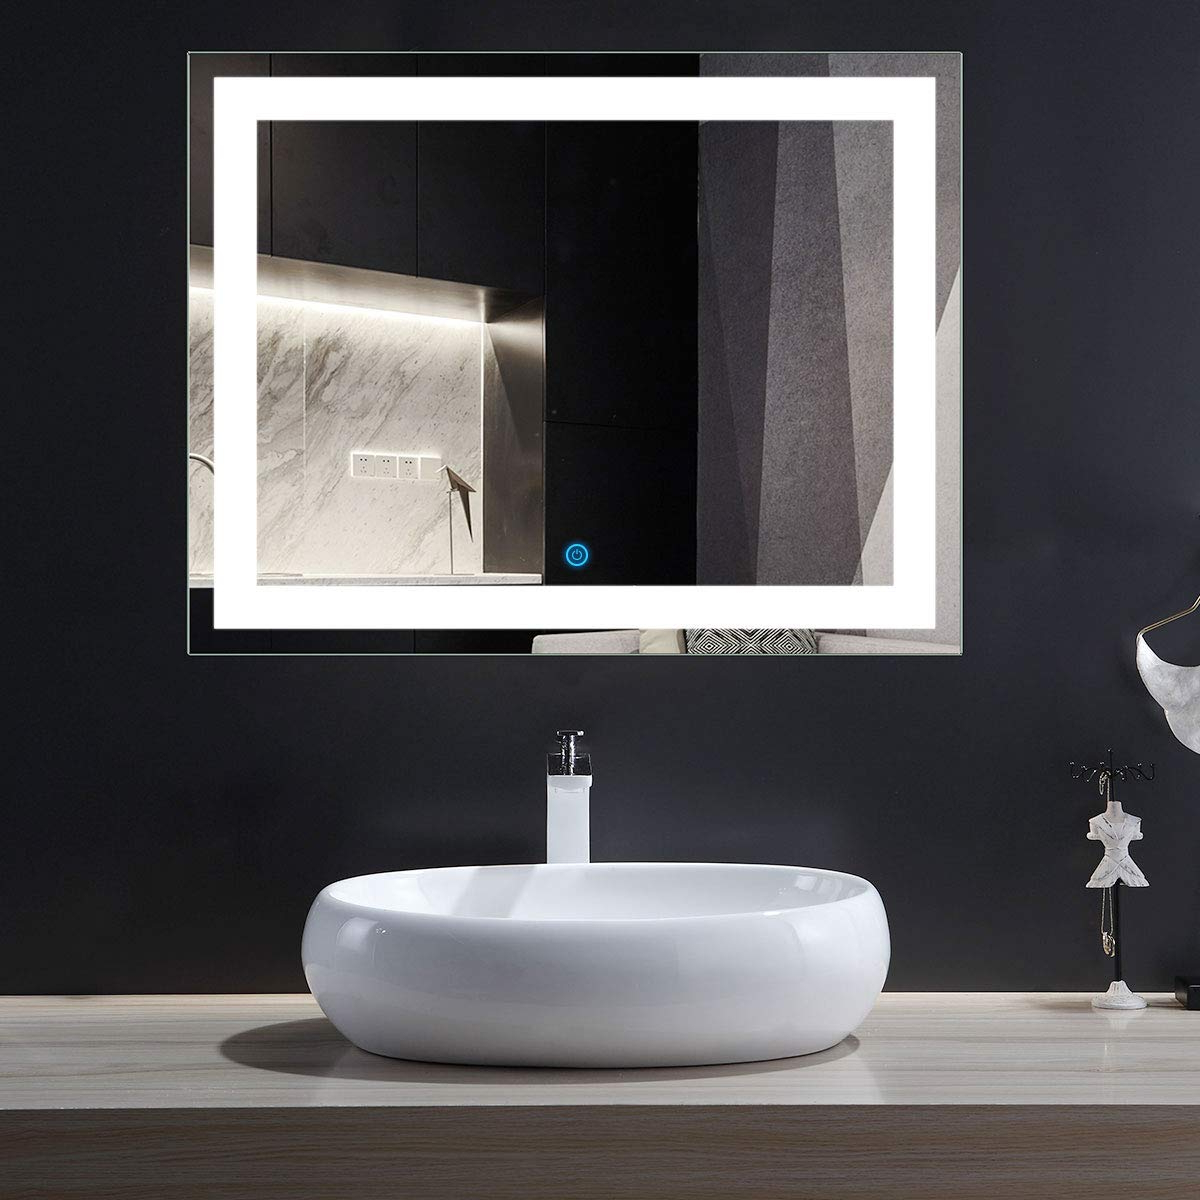 Newest Bathroom Vanity Wall Mirrors Within Dp Home Eco Friendly Lighted Bathroom/vanity Wall Mirror, Rectangle Illuminated Vanity Mirrors,36 X 28 In (e Ck010 I) (View 12 of 20)